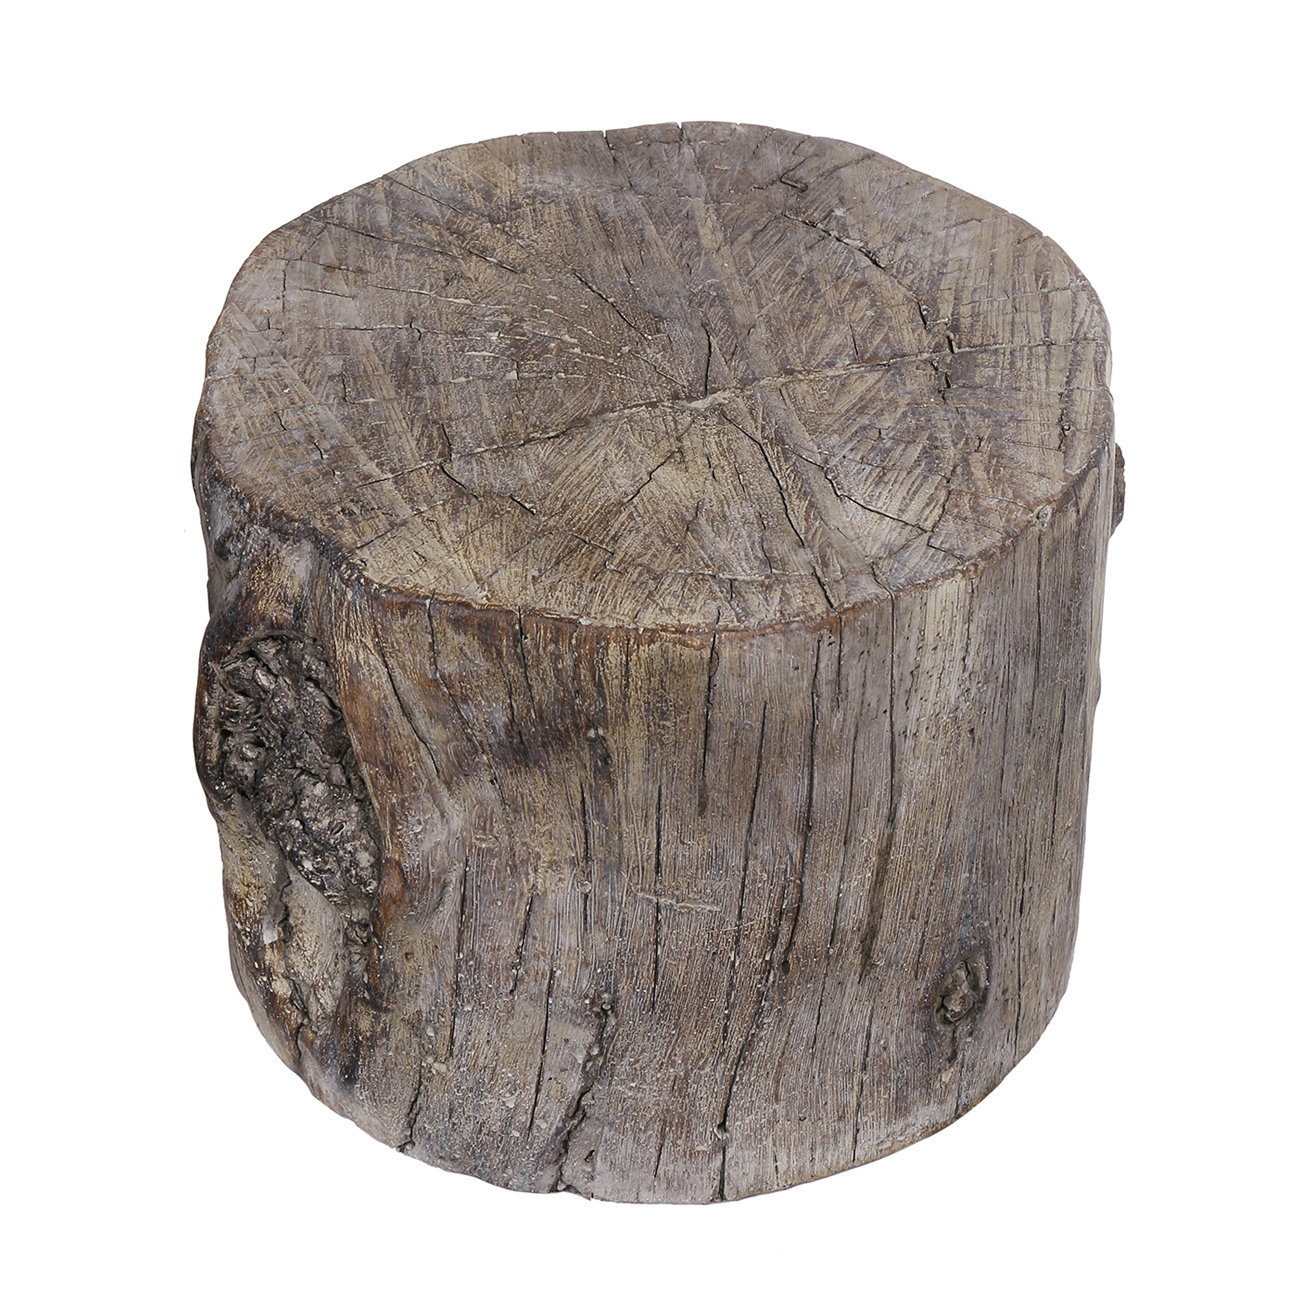 union rustic meier cement round tree stump accent stool wood table sofa dining room chairs edmonton small white patio modern decor ideas cute bedside lamps west elm industrial